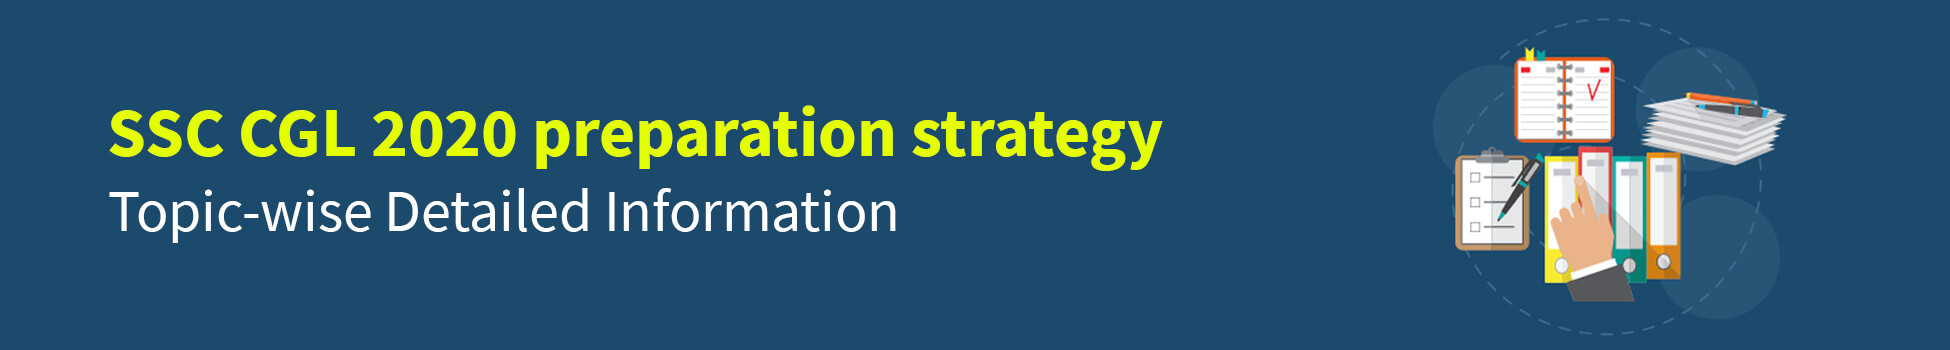 SSC CGL 2020 preparation strategy | Topic-wise Detailed Information